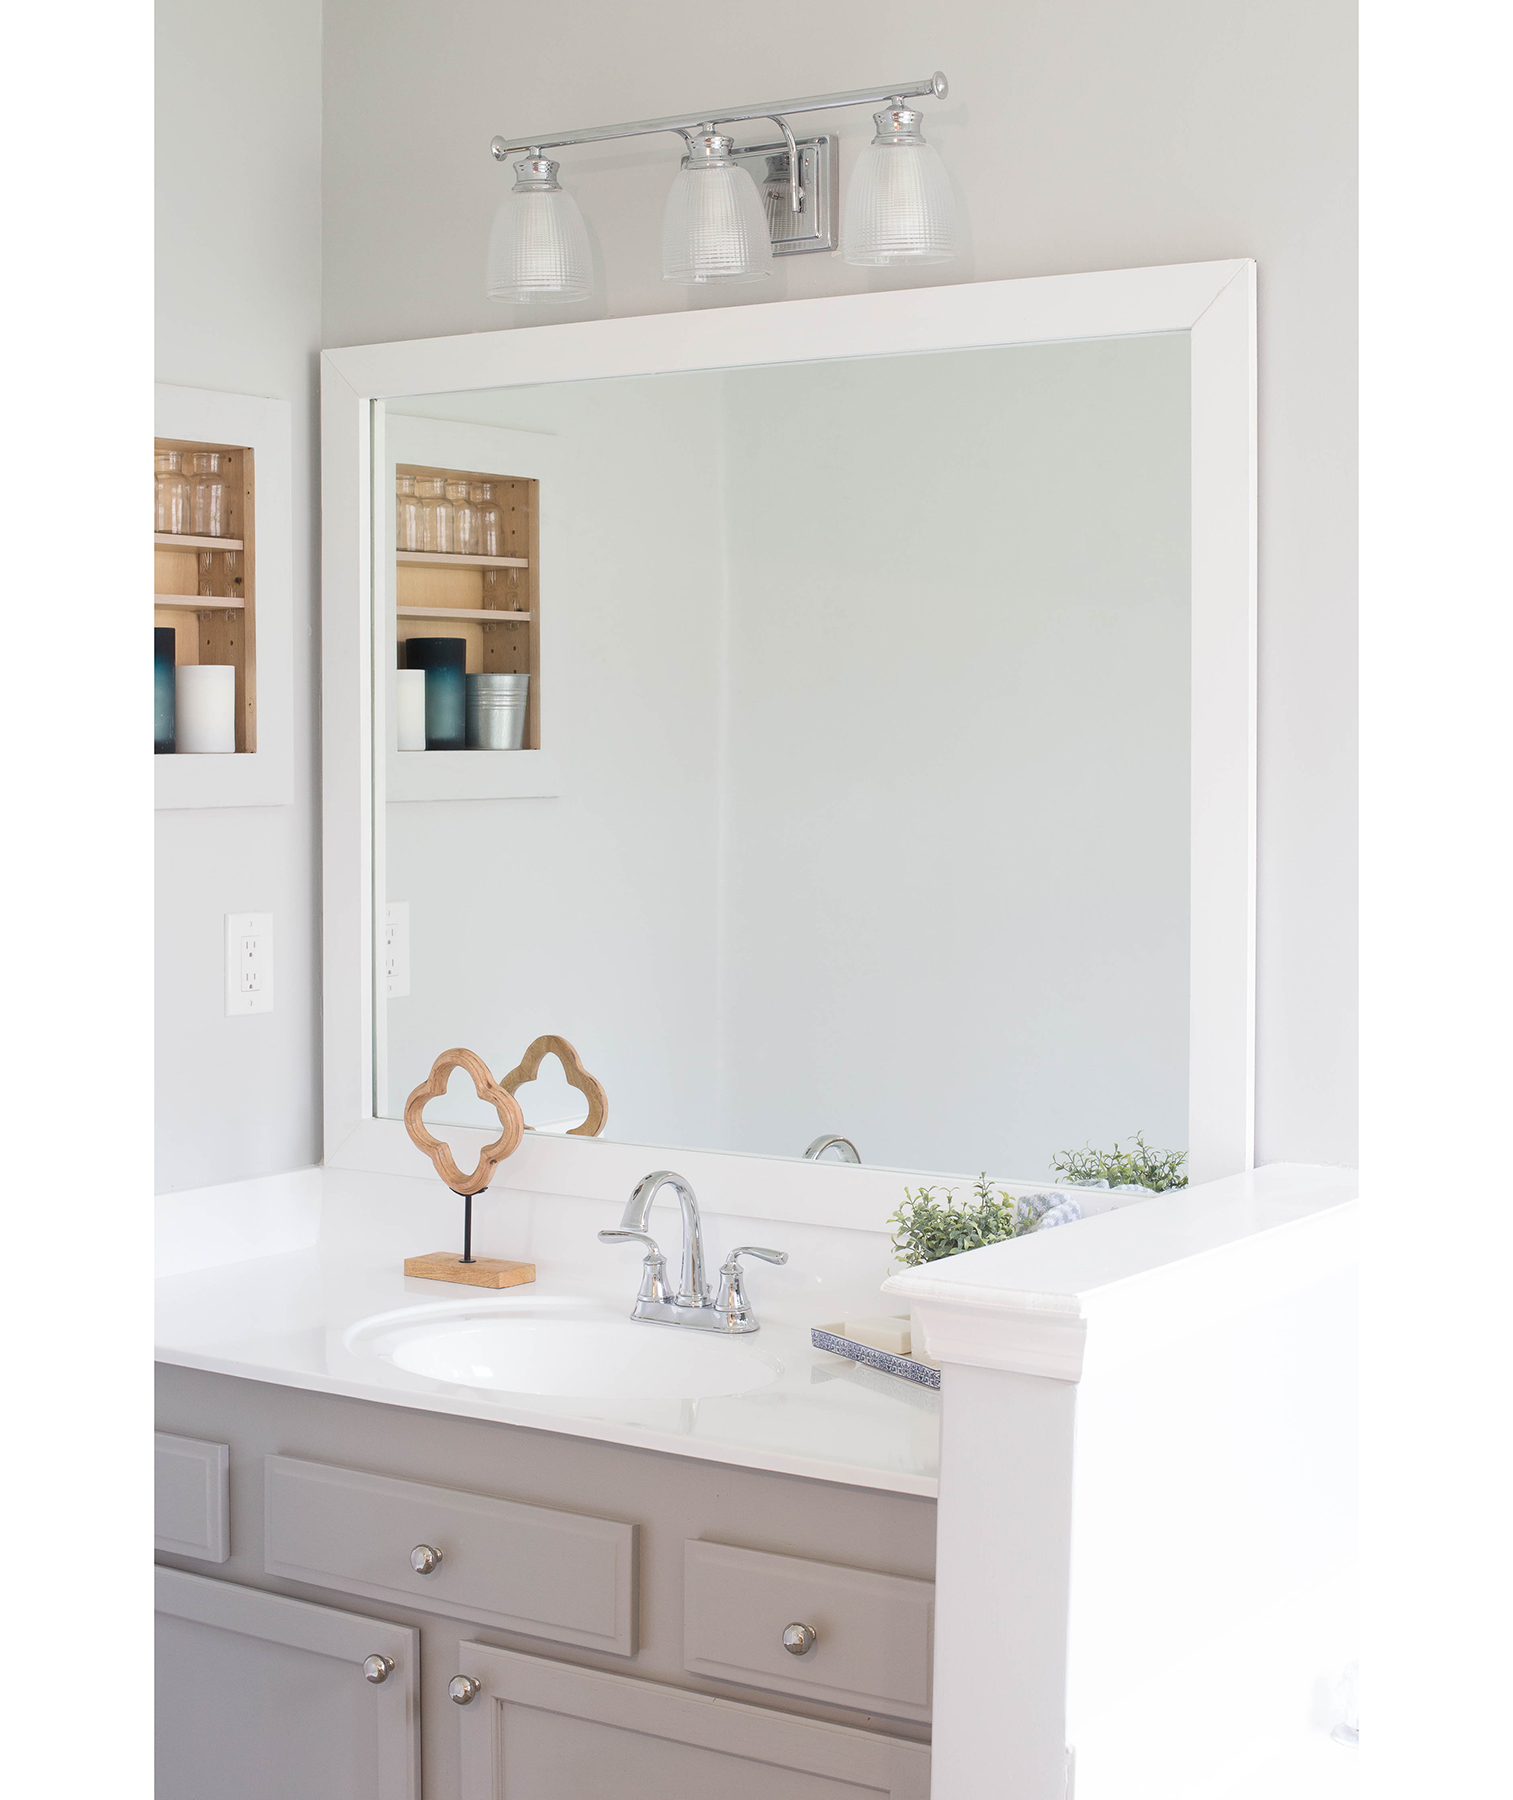 Bathroom mirror with white frame